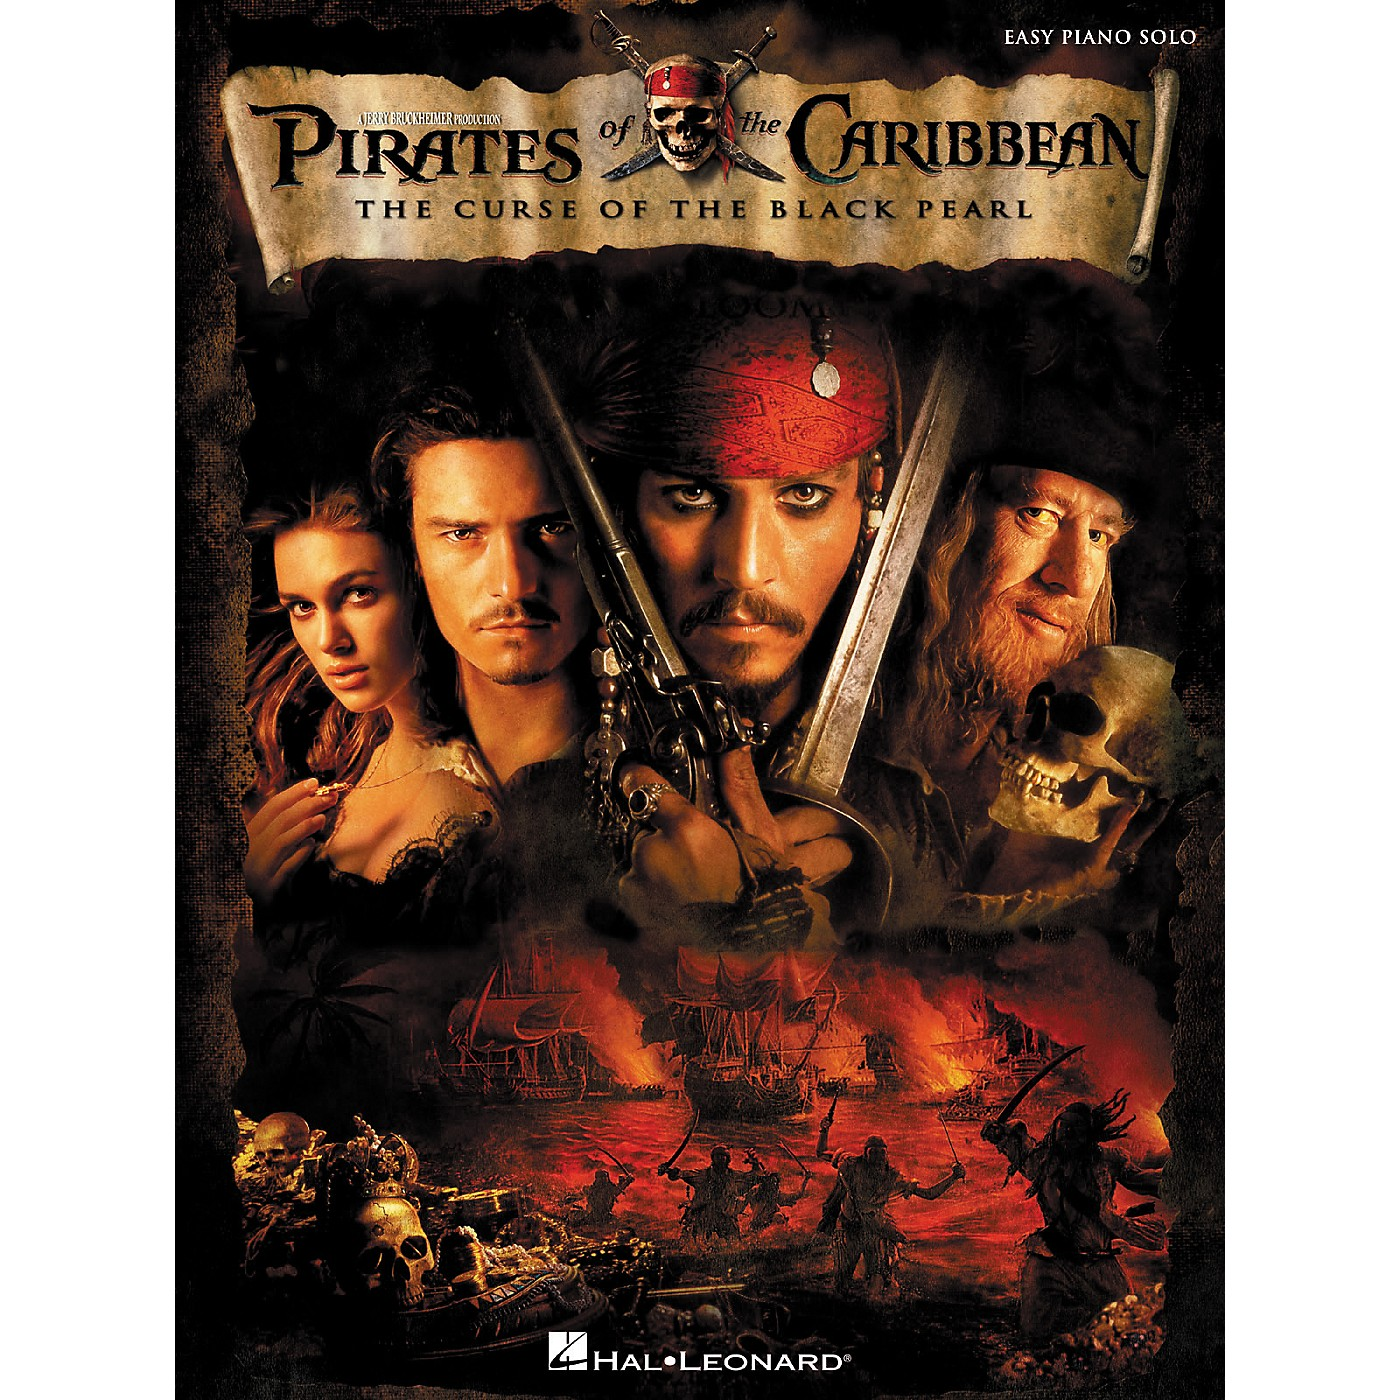 Hal Leonard Pirates Of The Caribbean - The Curse Of The Black Pearl For Easy Piano Solo thumbnail